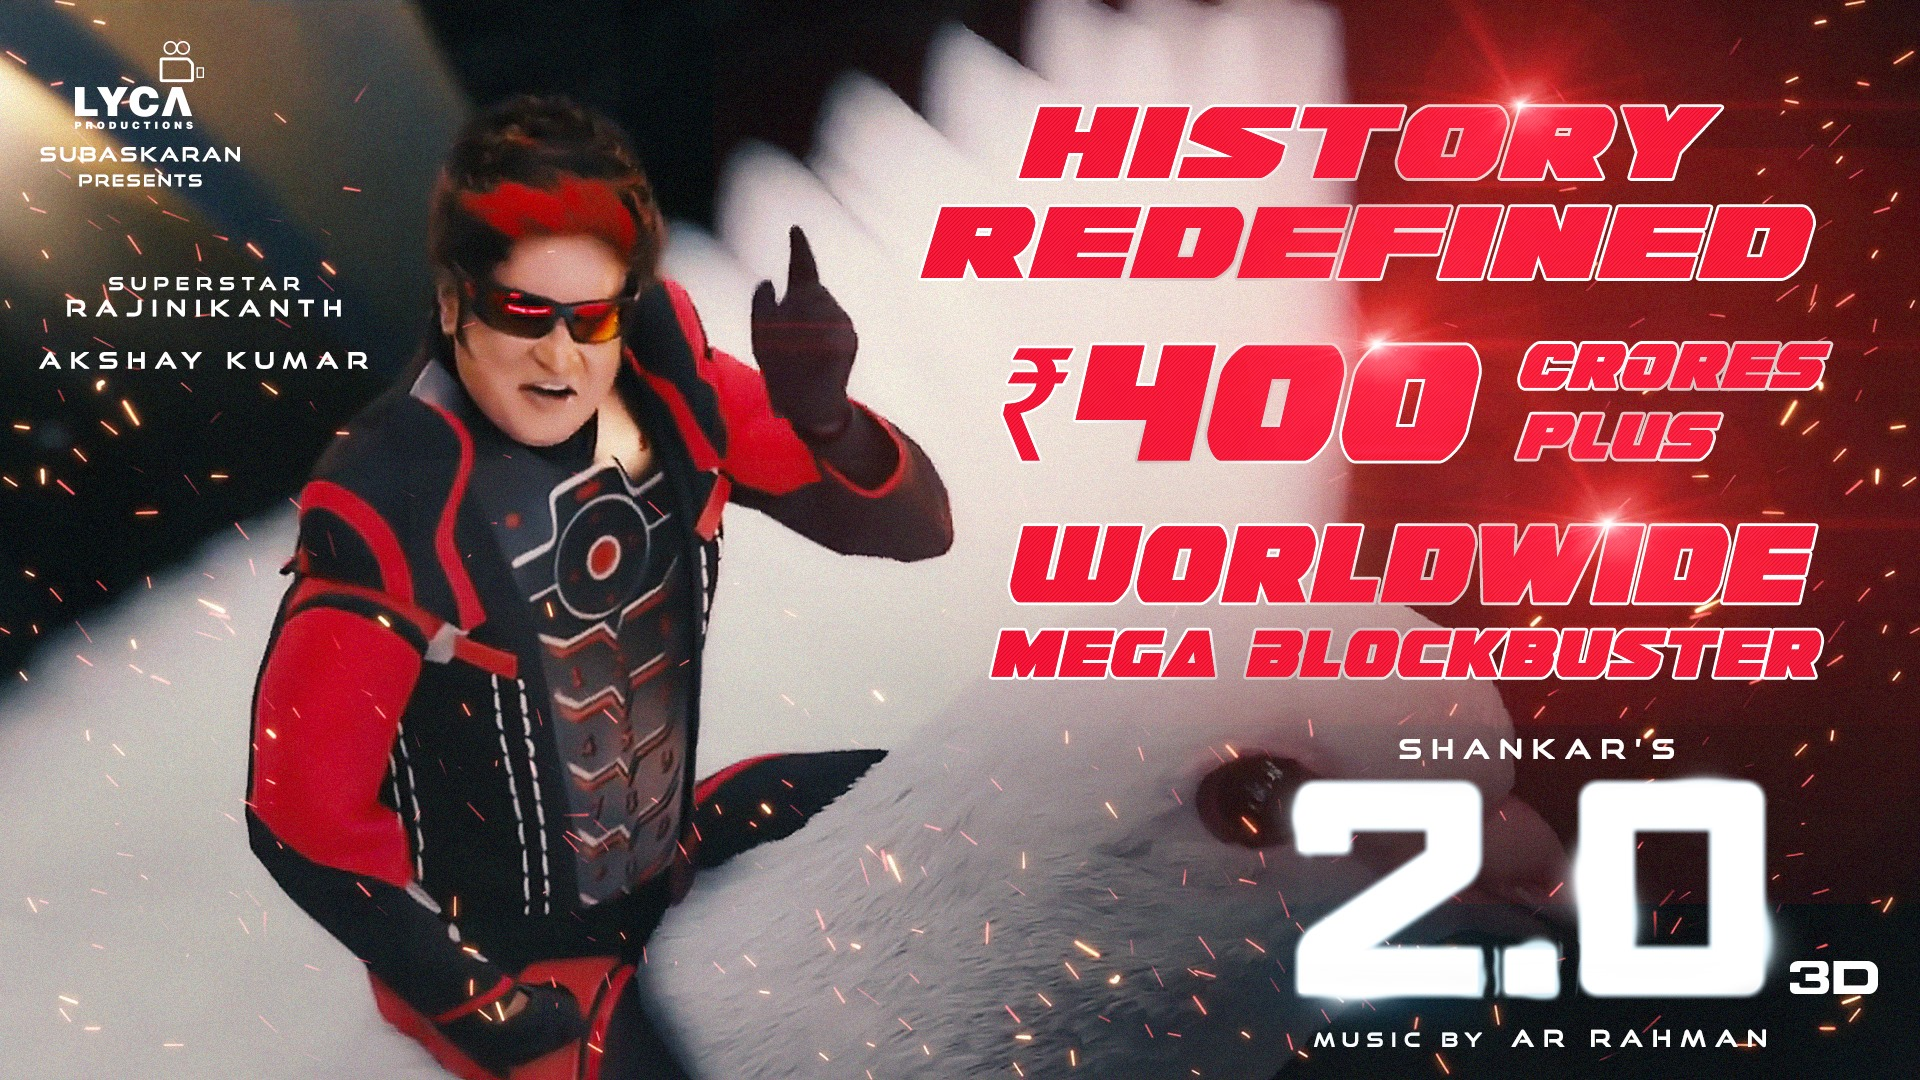 Rajini 2.0 collects Rs 400 crore in 4 days Mega Blockbuster